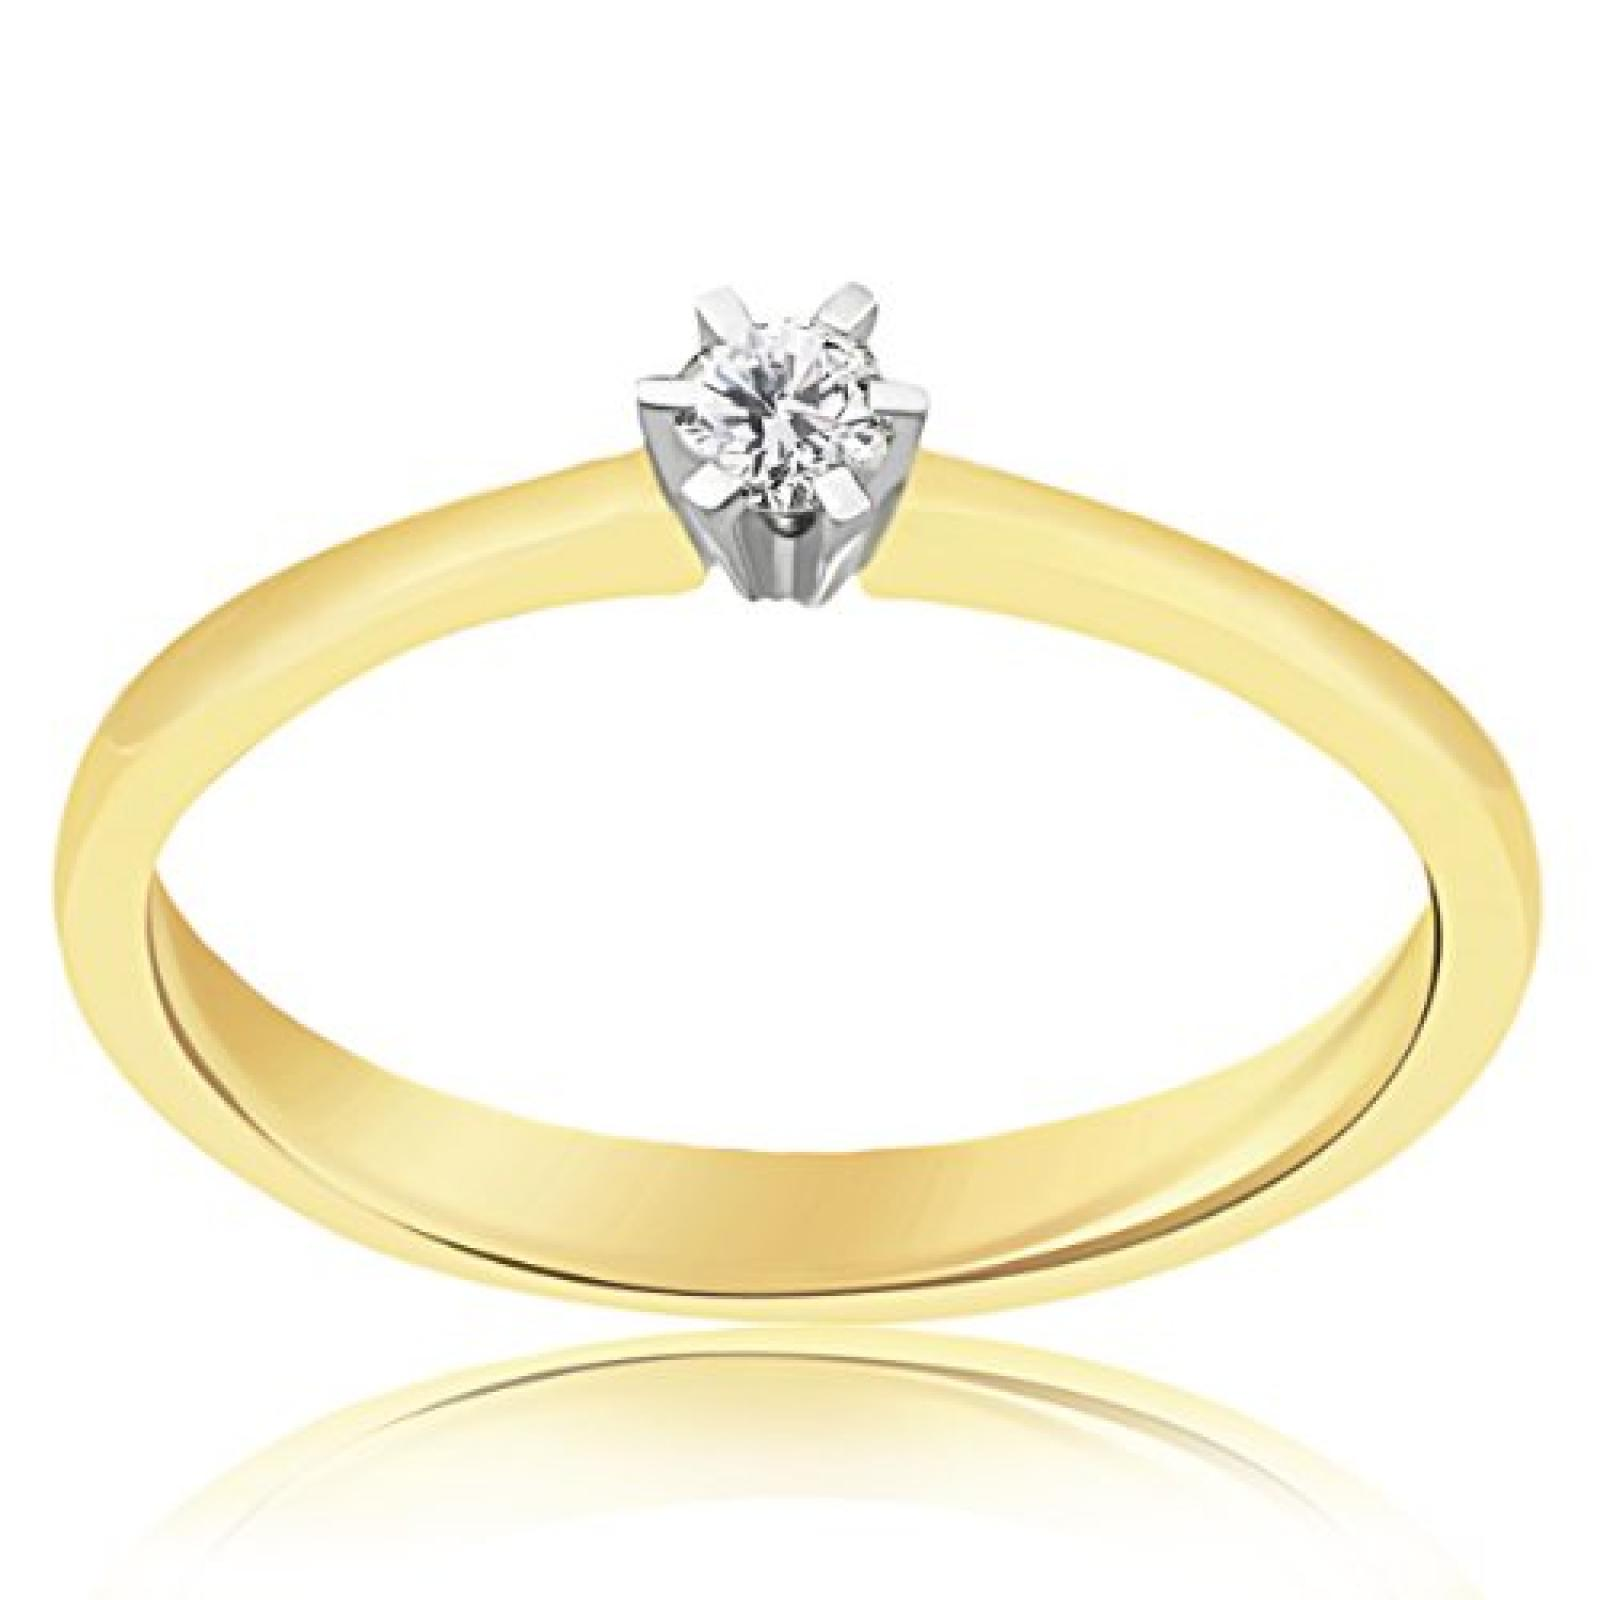 Goldmaid Damen-Ring 585 Gelbgold 1 Brillant 0,10ct So R3986GG